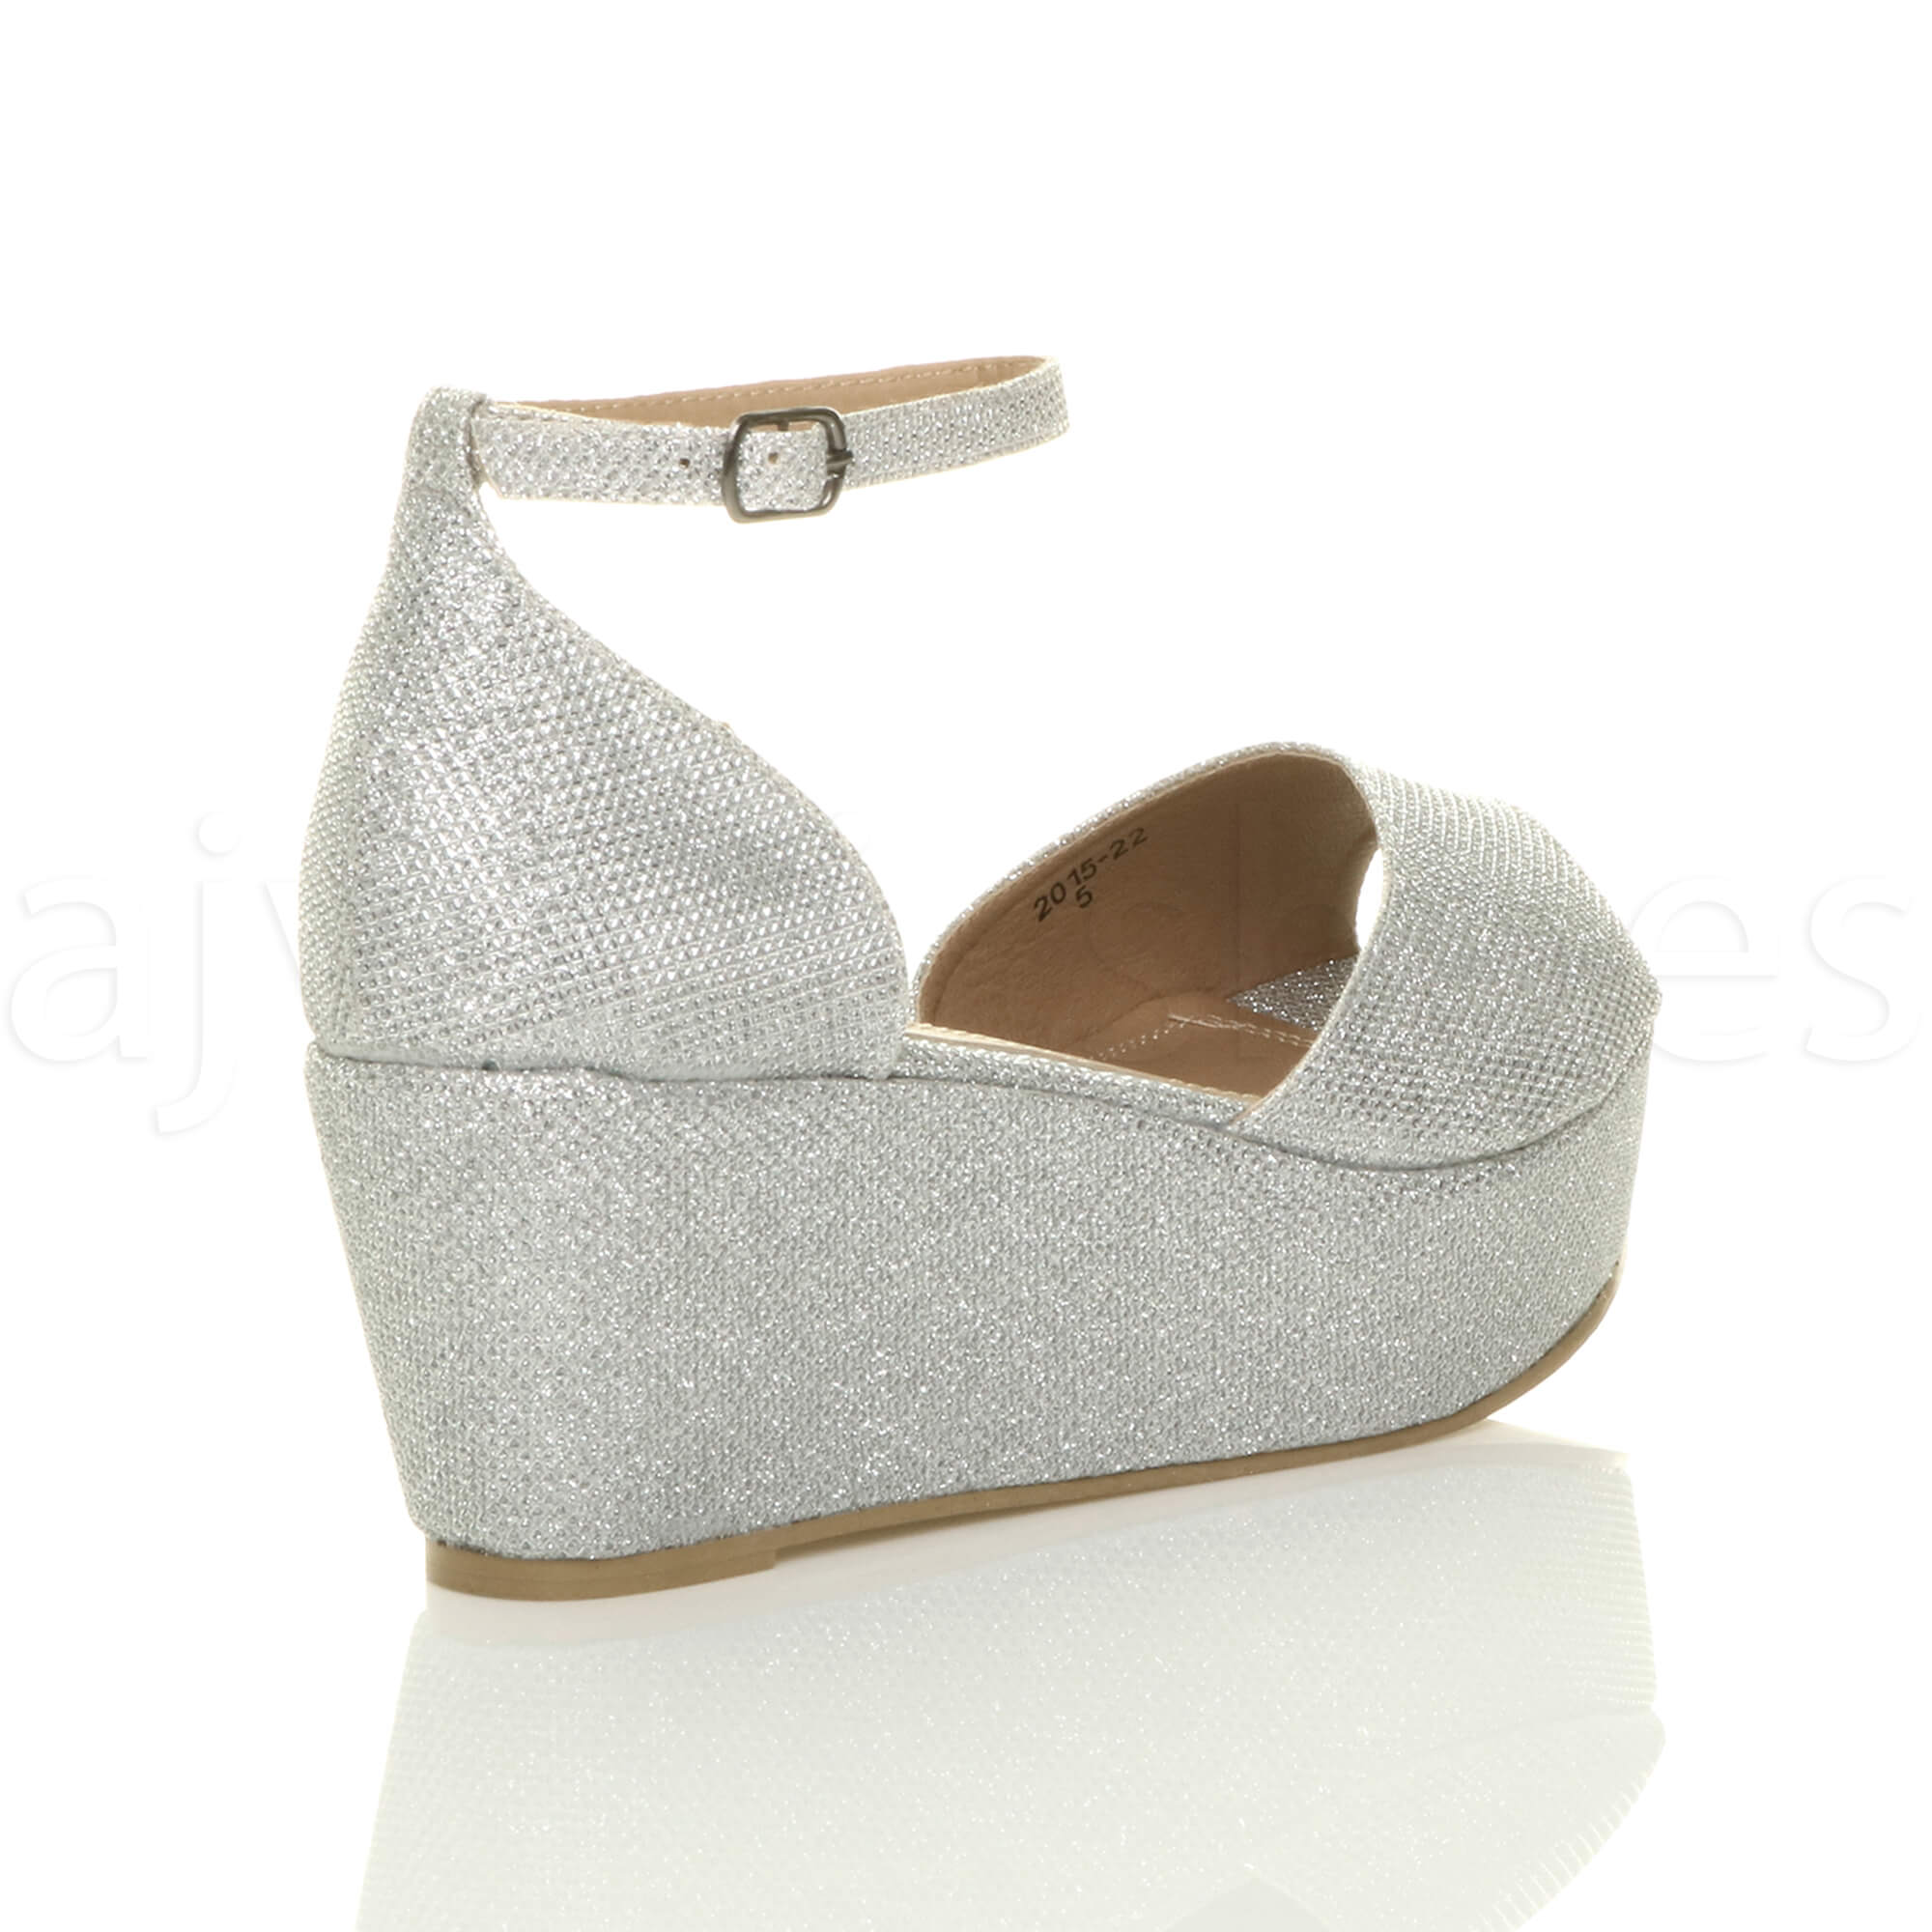 Shop for women's wedge sandals below, with a wide variety of wedge sandal varieties to choose from such as cork wedge sandals, espadrille wedge sandals, and more! Women's Wedge Sandals Showing of Item s.